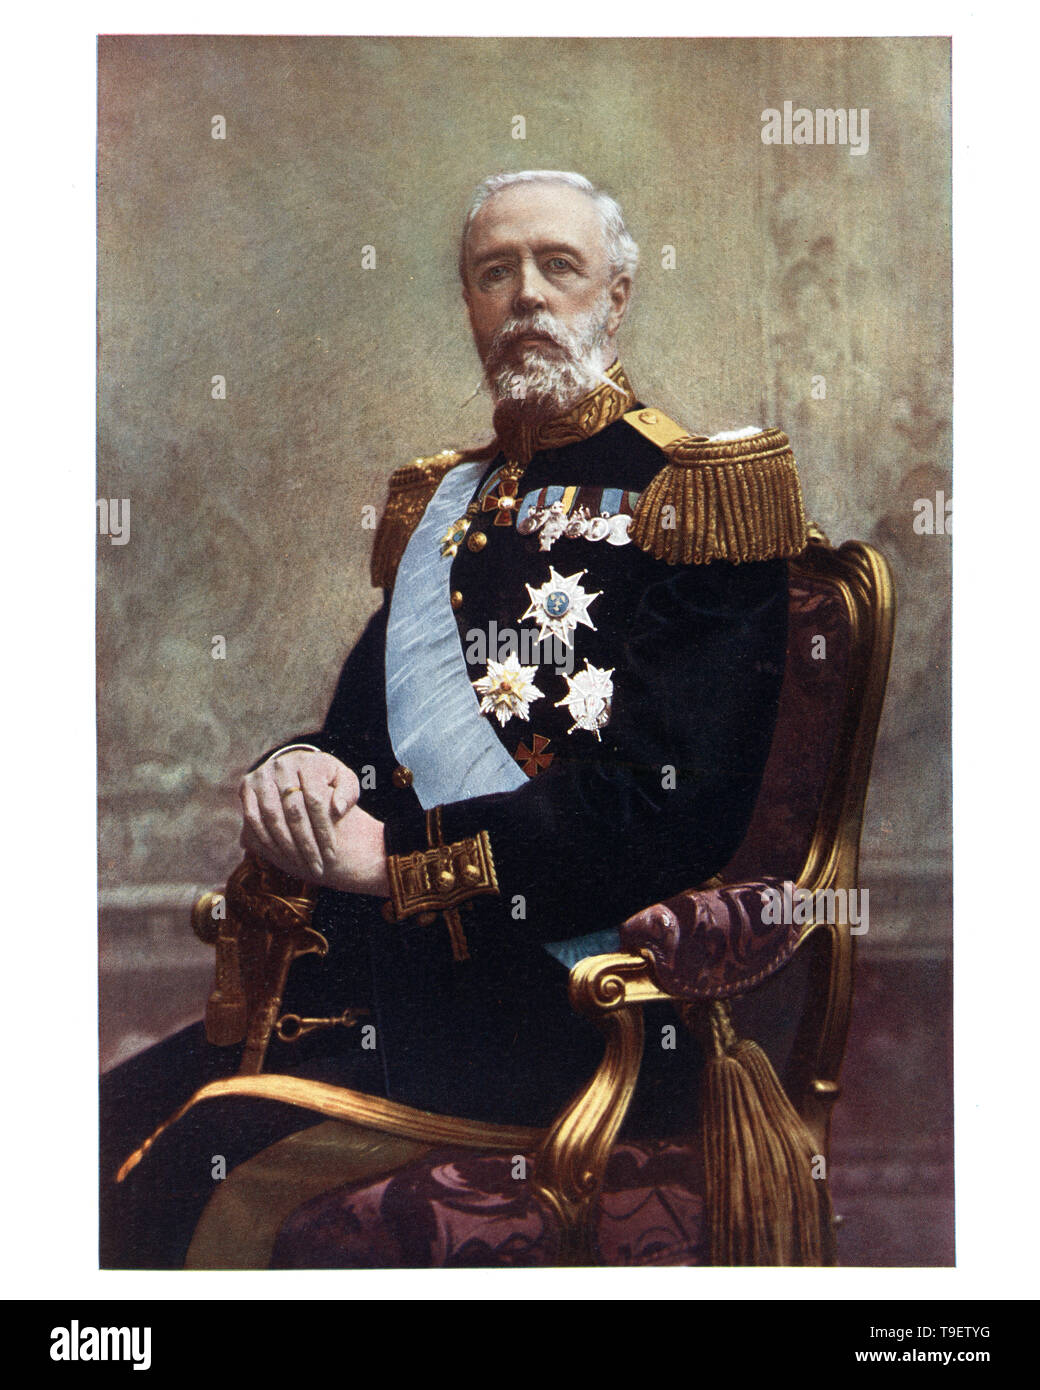 King Oscar II of Sweden was King of Sweden from 1872 until his death, and the last Bernadotte King of Norway from 1872 until his dethronement in 1905. - Stock Image